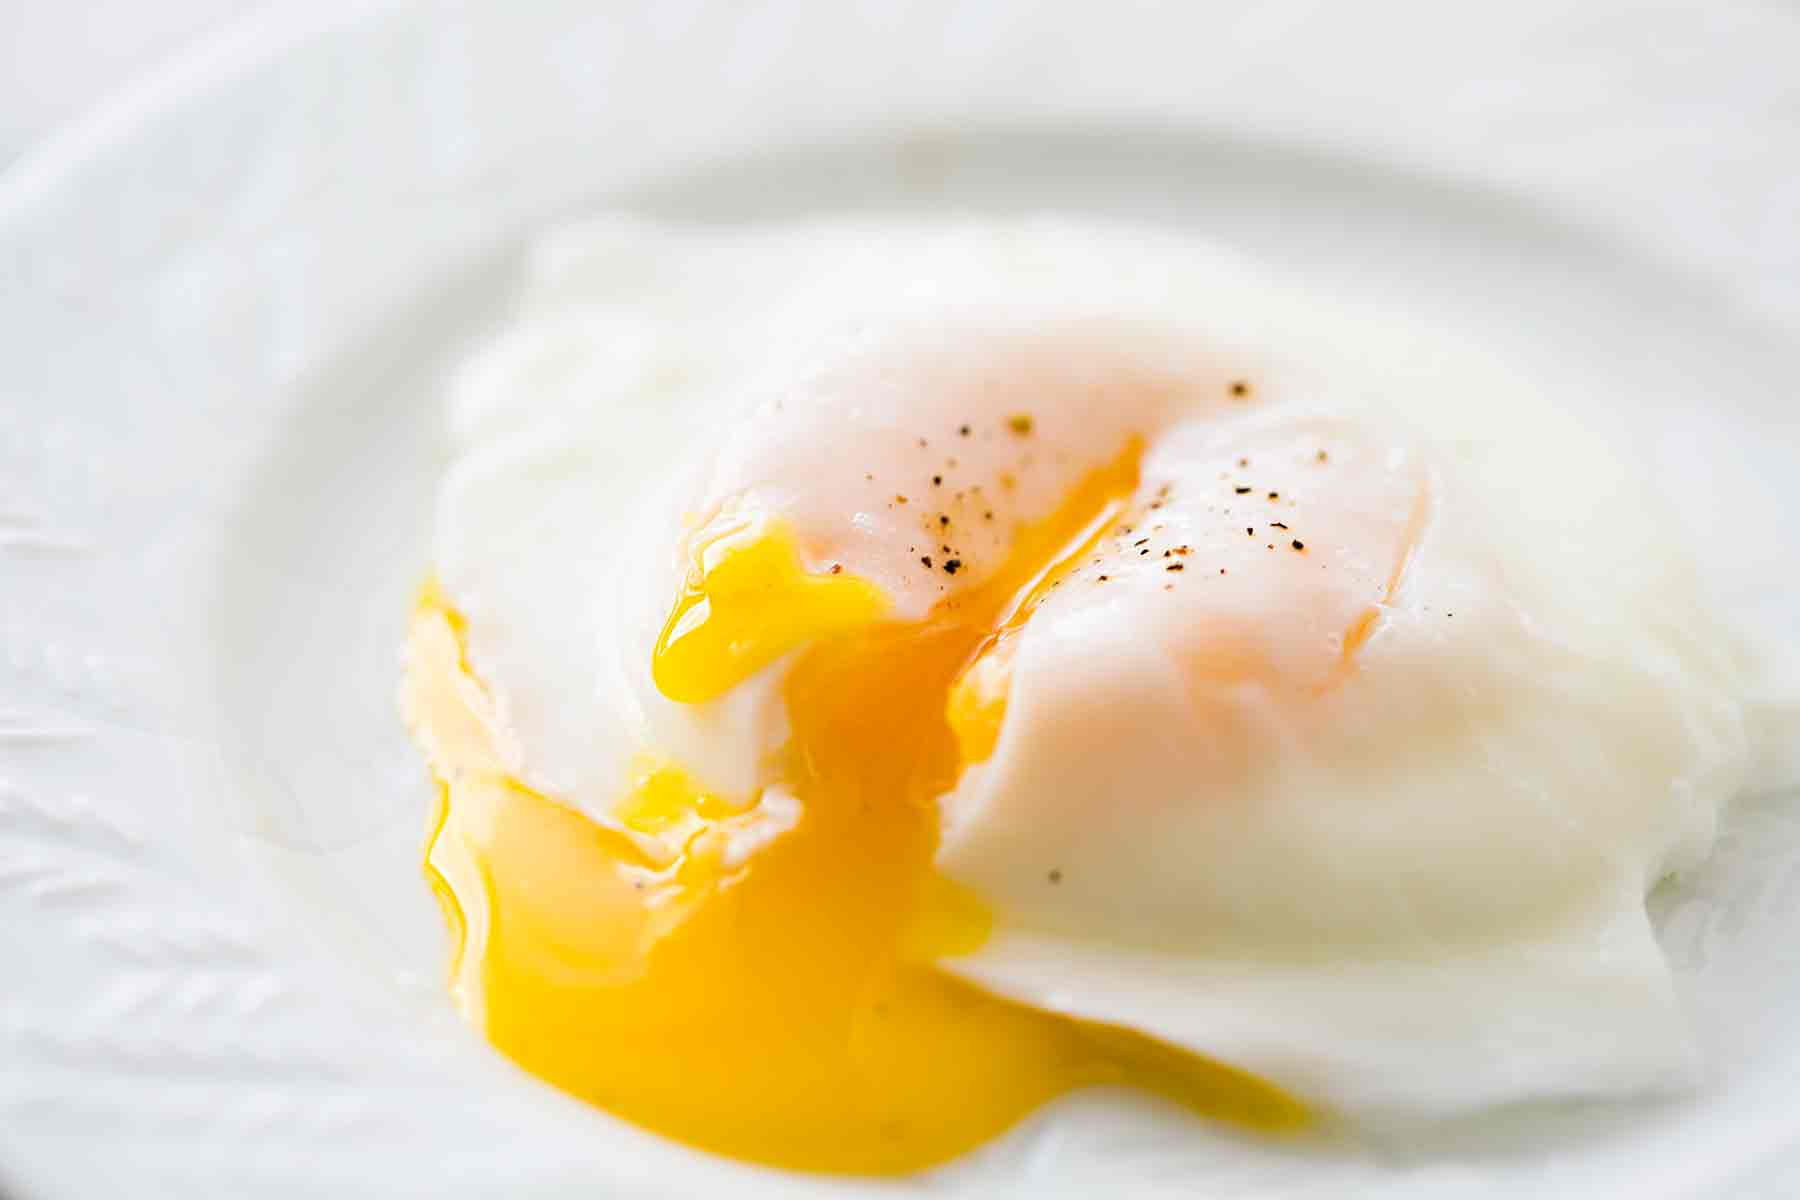 food poisoning from Eggs